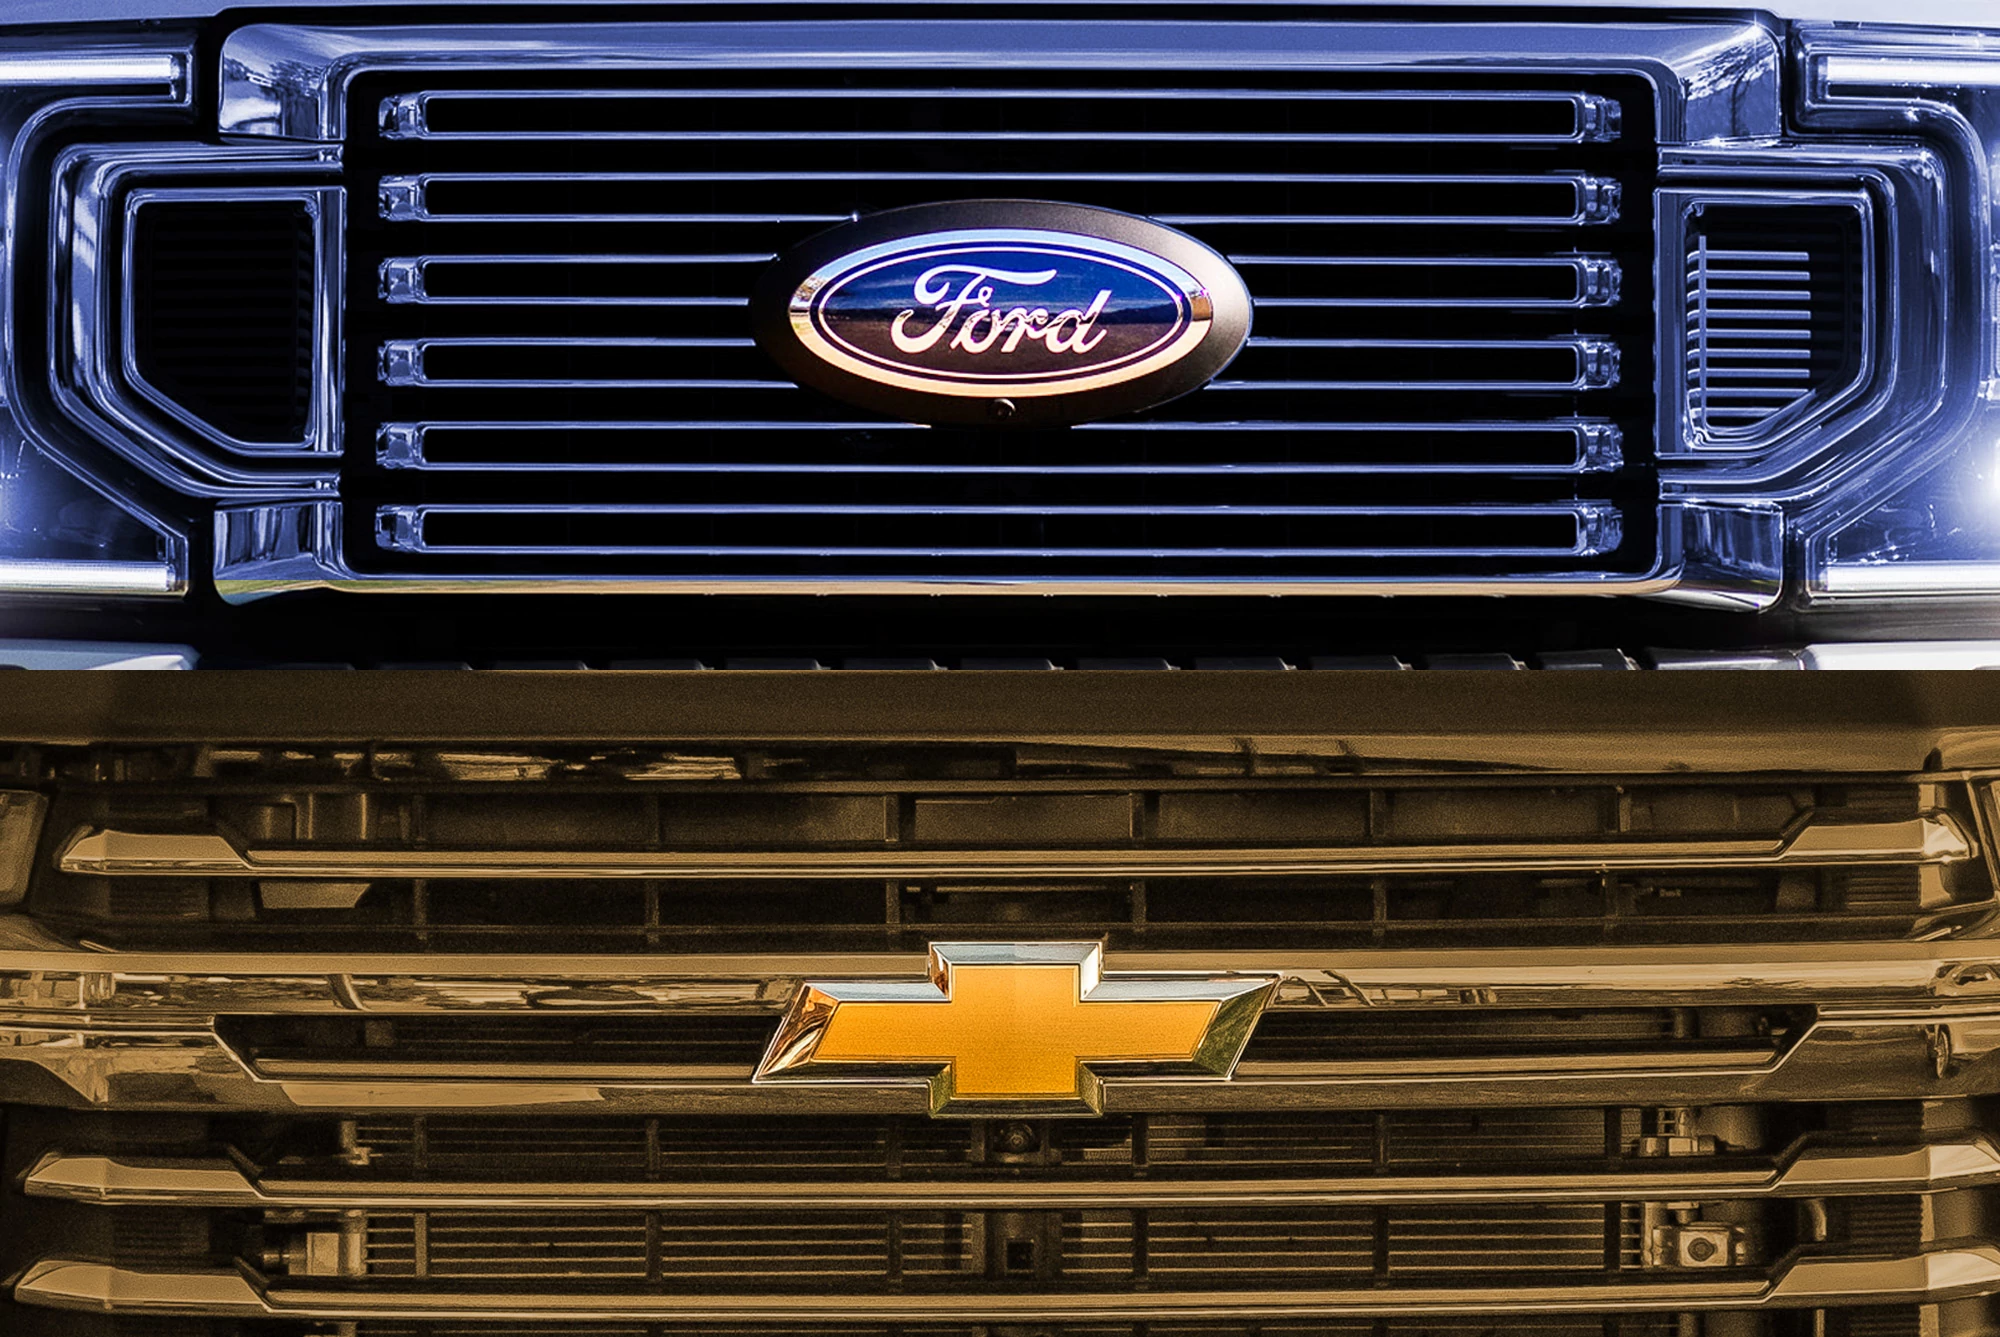 Ford Vs. Chevy: A Rivalry for the Automotive Ages Rages On